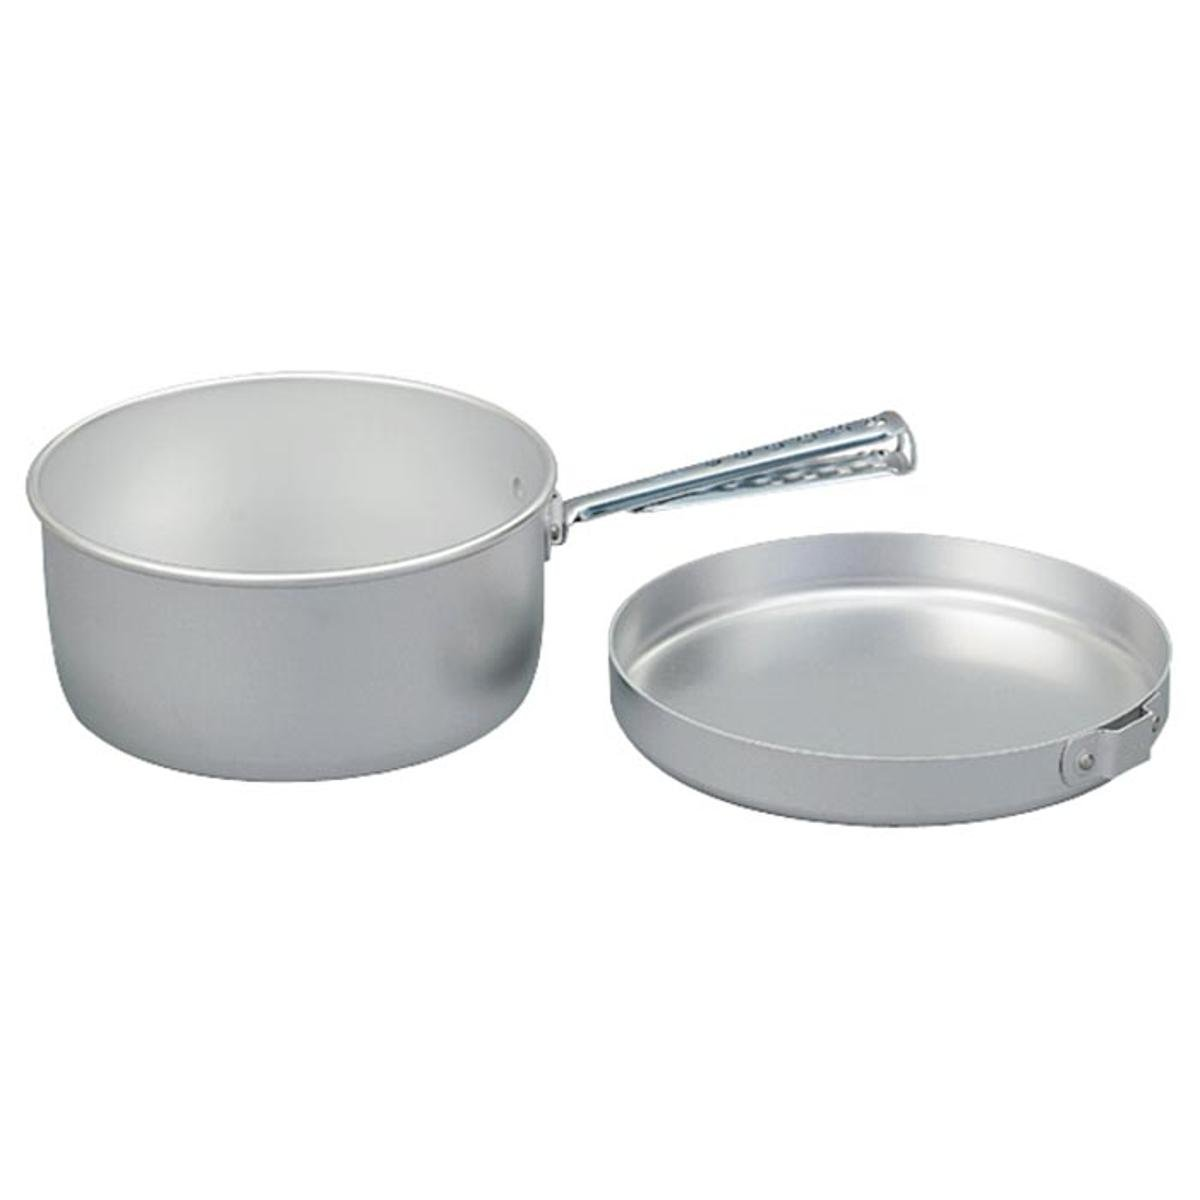 Trangia - Camping Cook Set | Includes: 1.5 L Saucepan, 7 Inch Frypan, Detachable Handle 327519